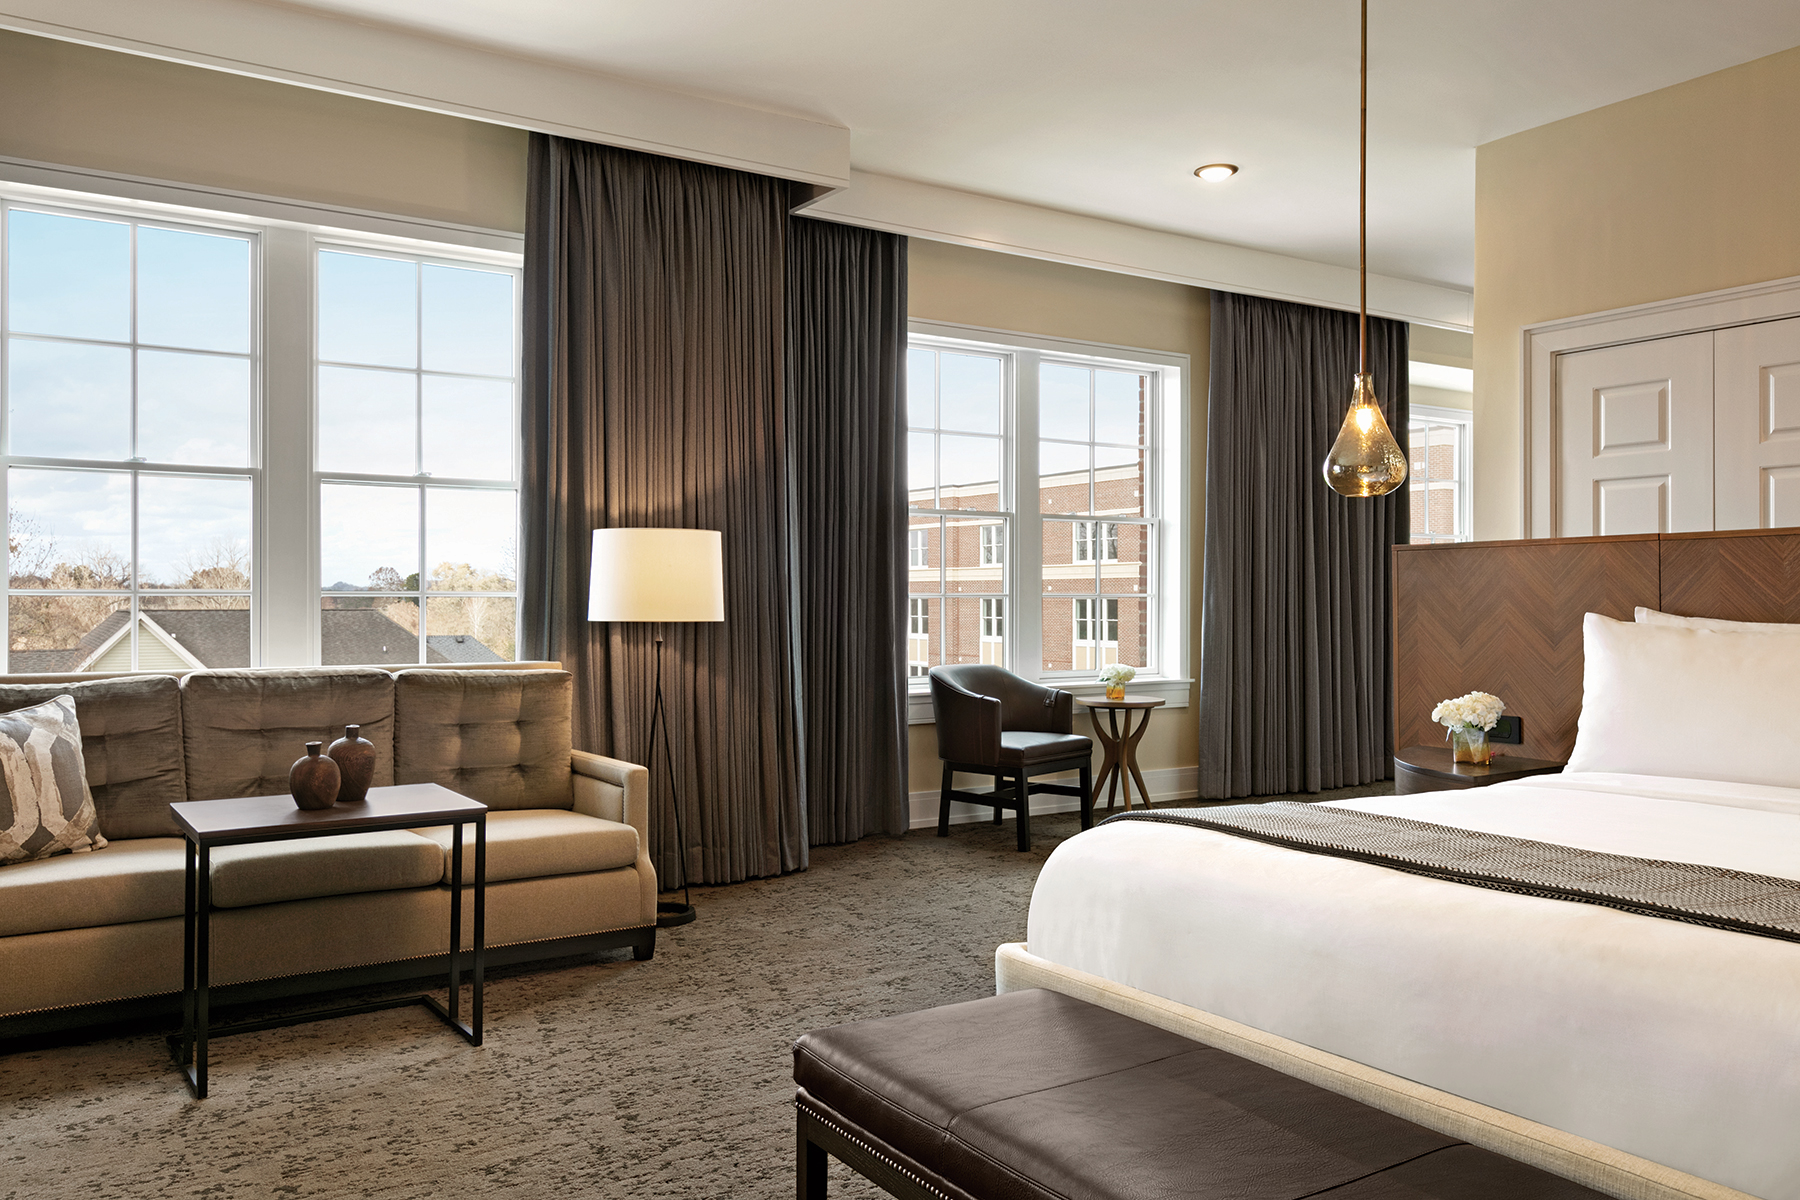 Interior of a Jr. Suite at The Harpeth Hotel, Curio Collection by Hilton